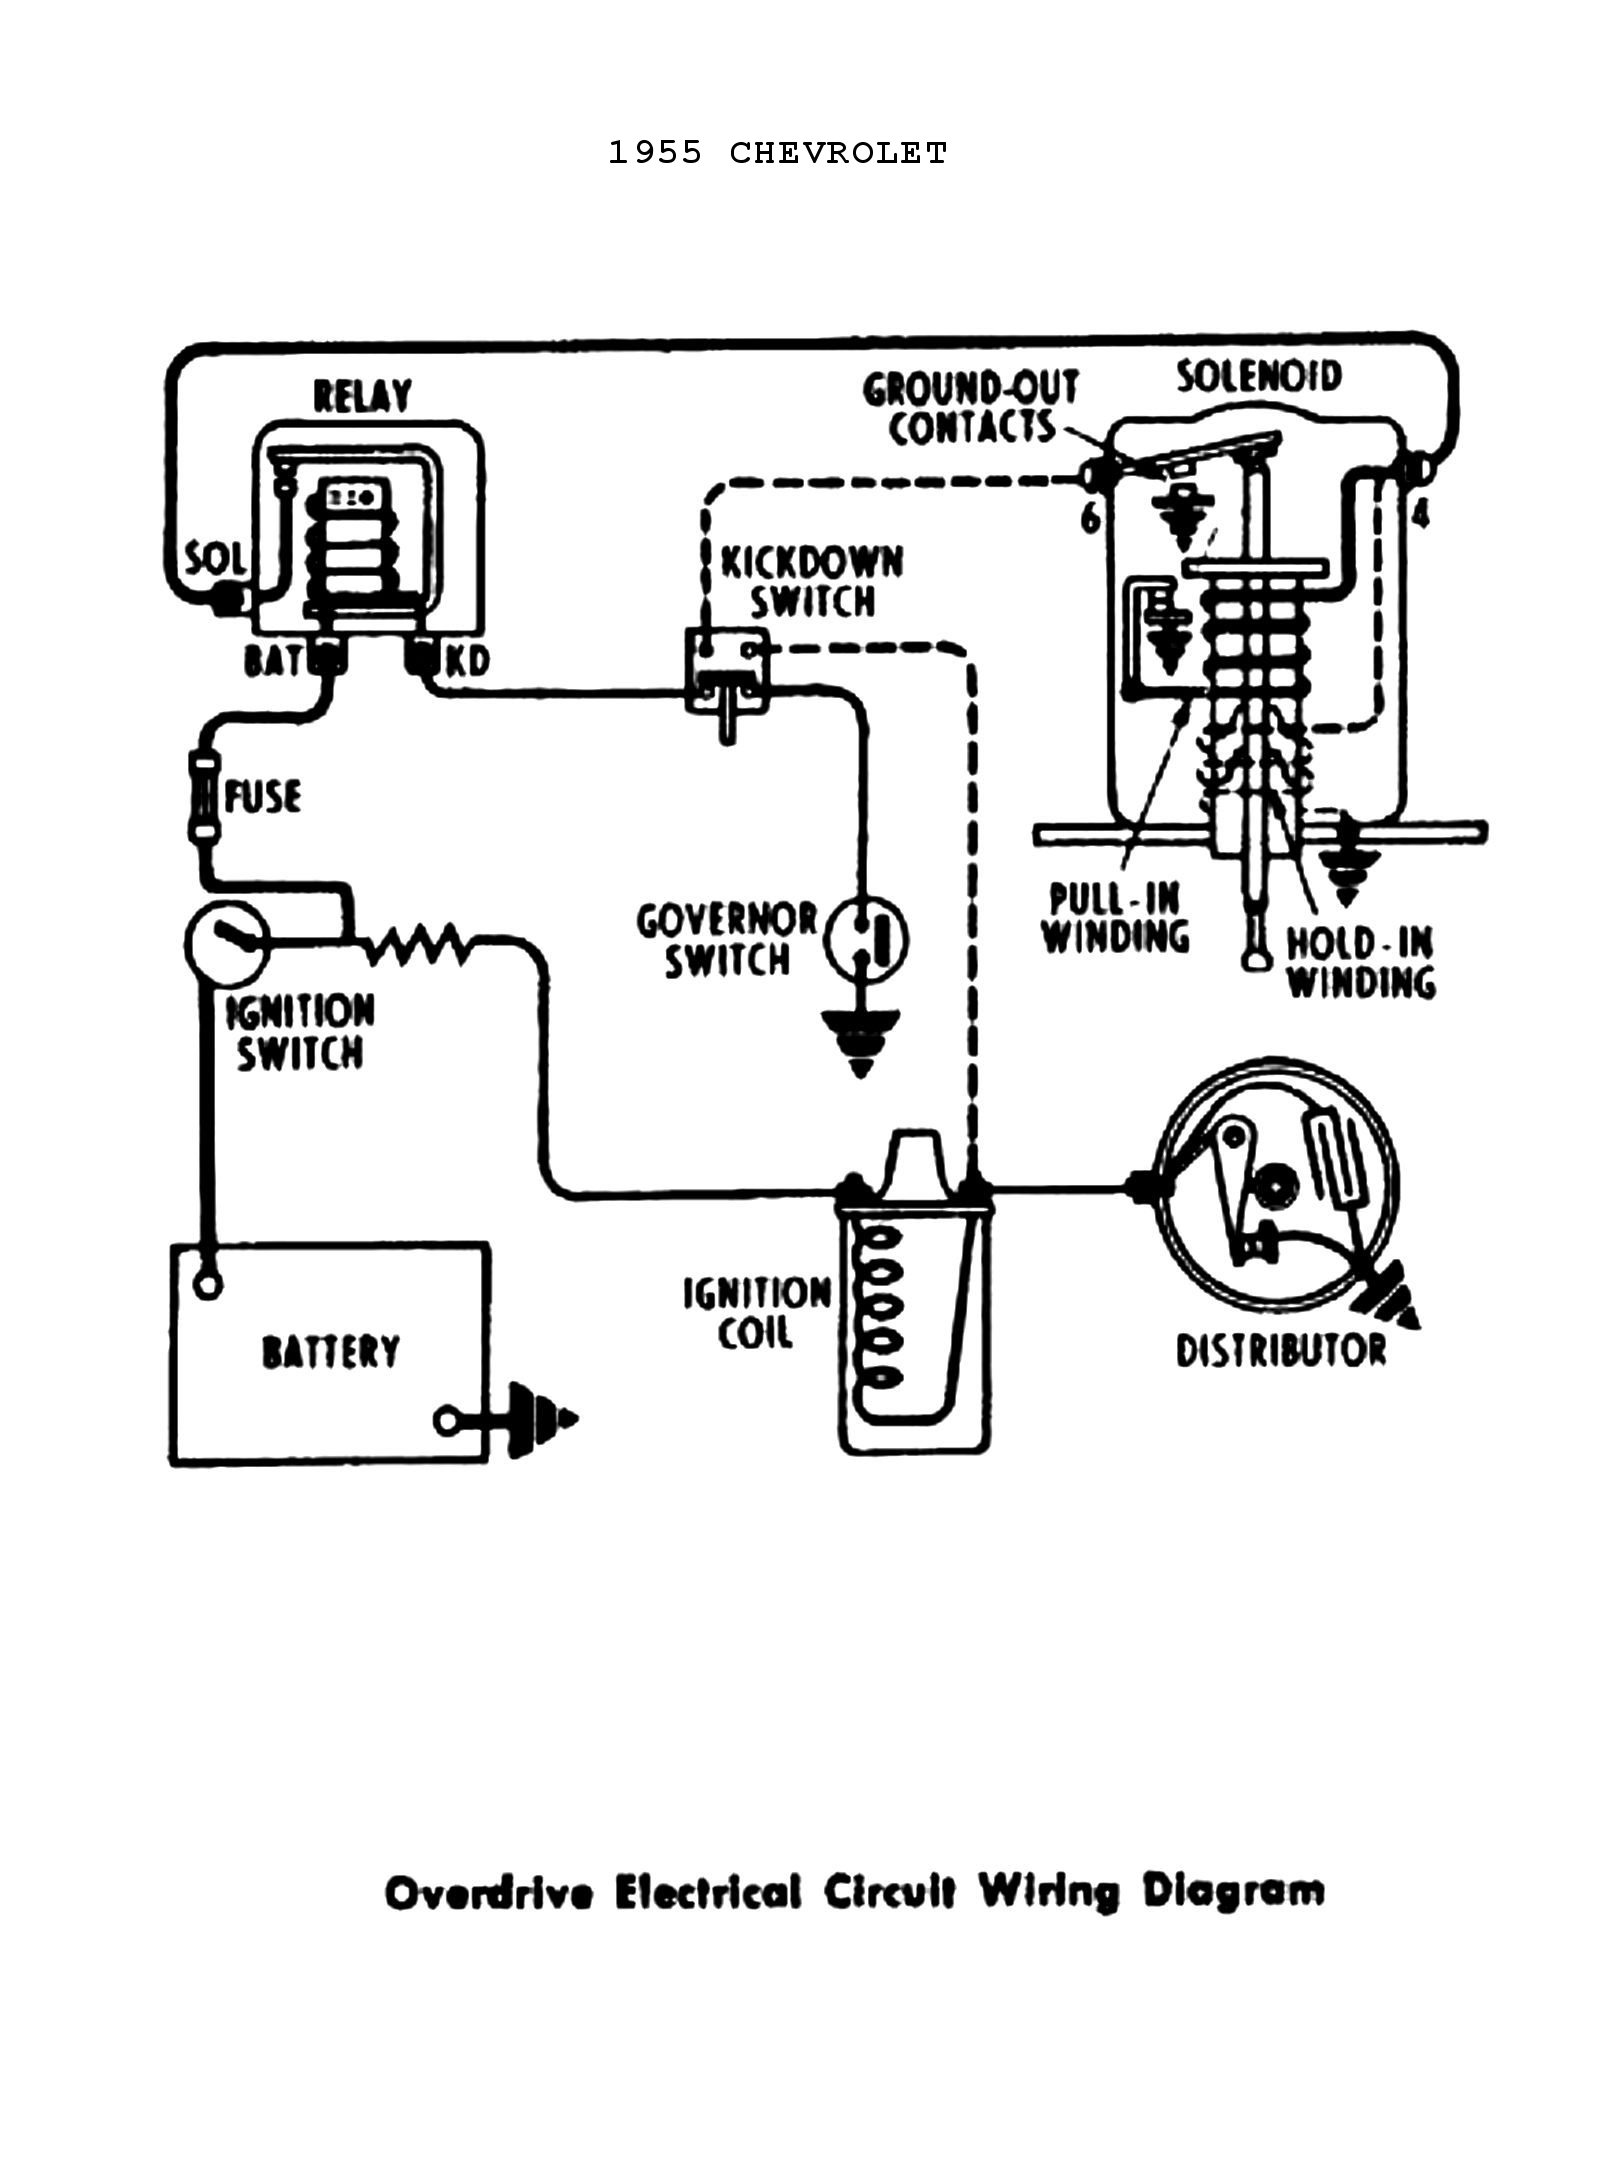 chevy wiring diagrams 55 chevy 12 volt horn relay wiring diagram 12 volt headlight relay wiring diagrams